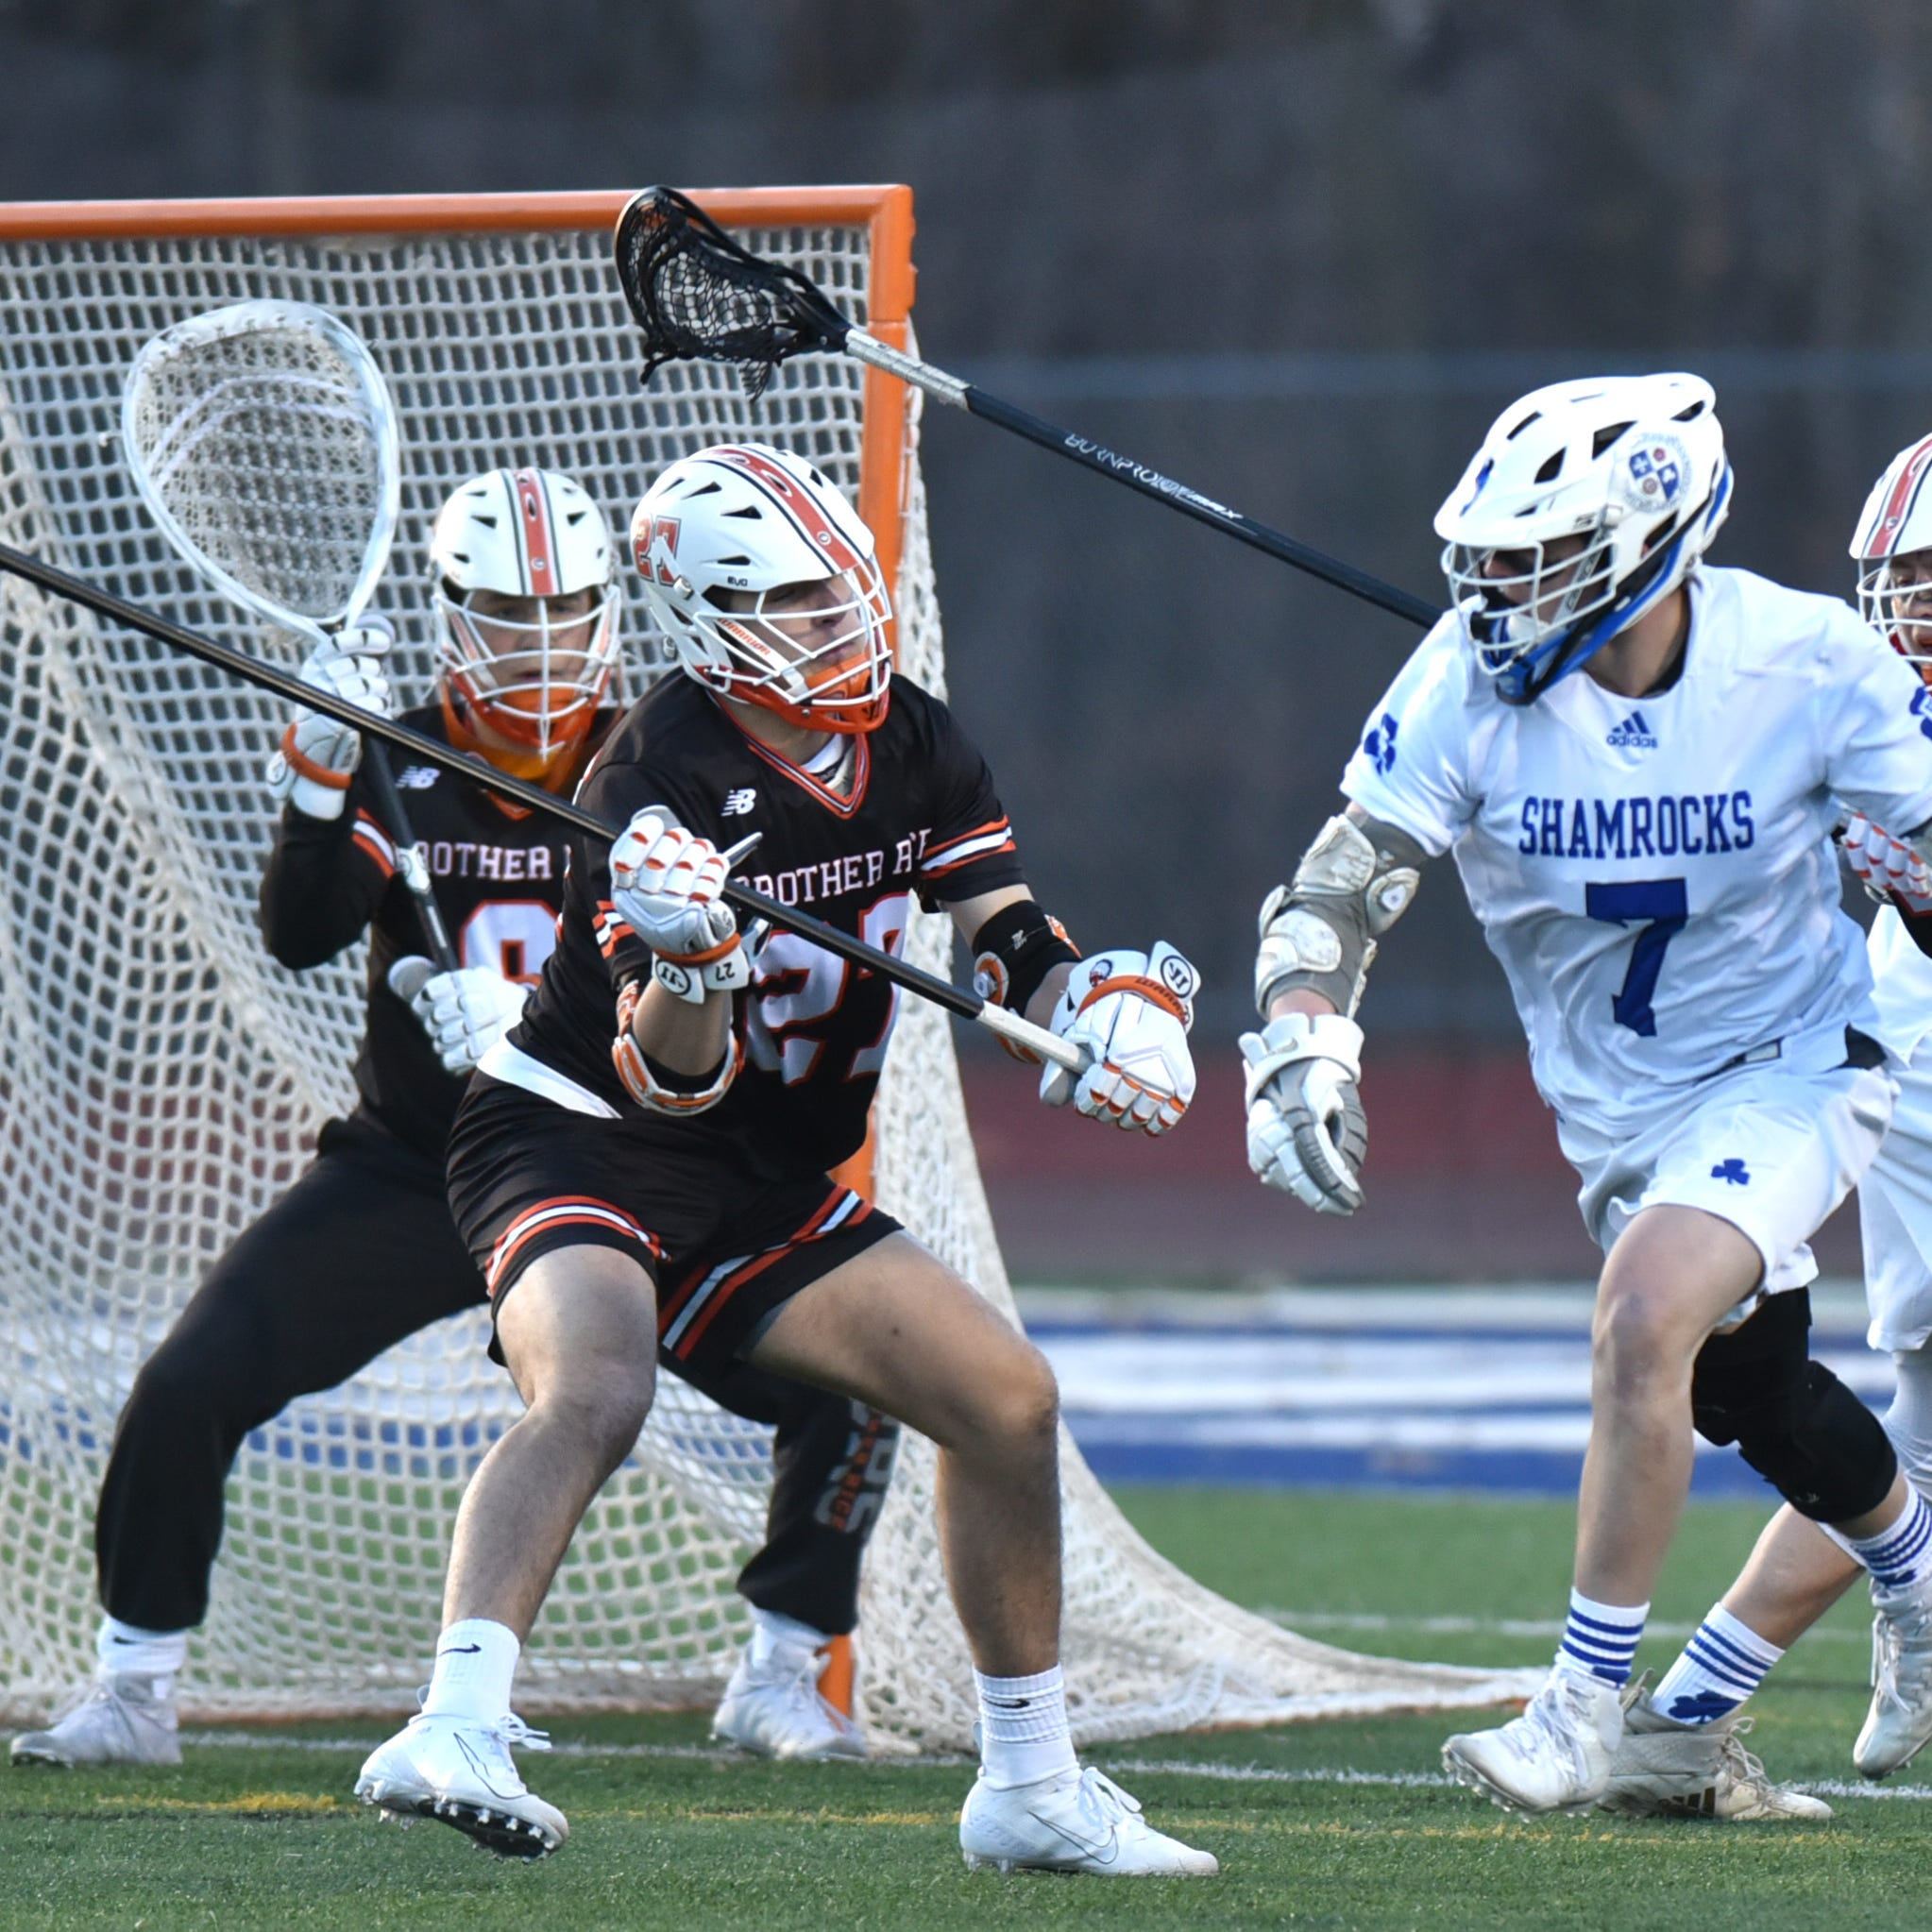 Birmingham Brother Rice lacrosse routs Detroit Catholic Central in title game rematch